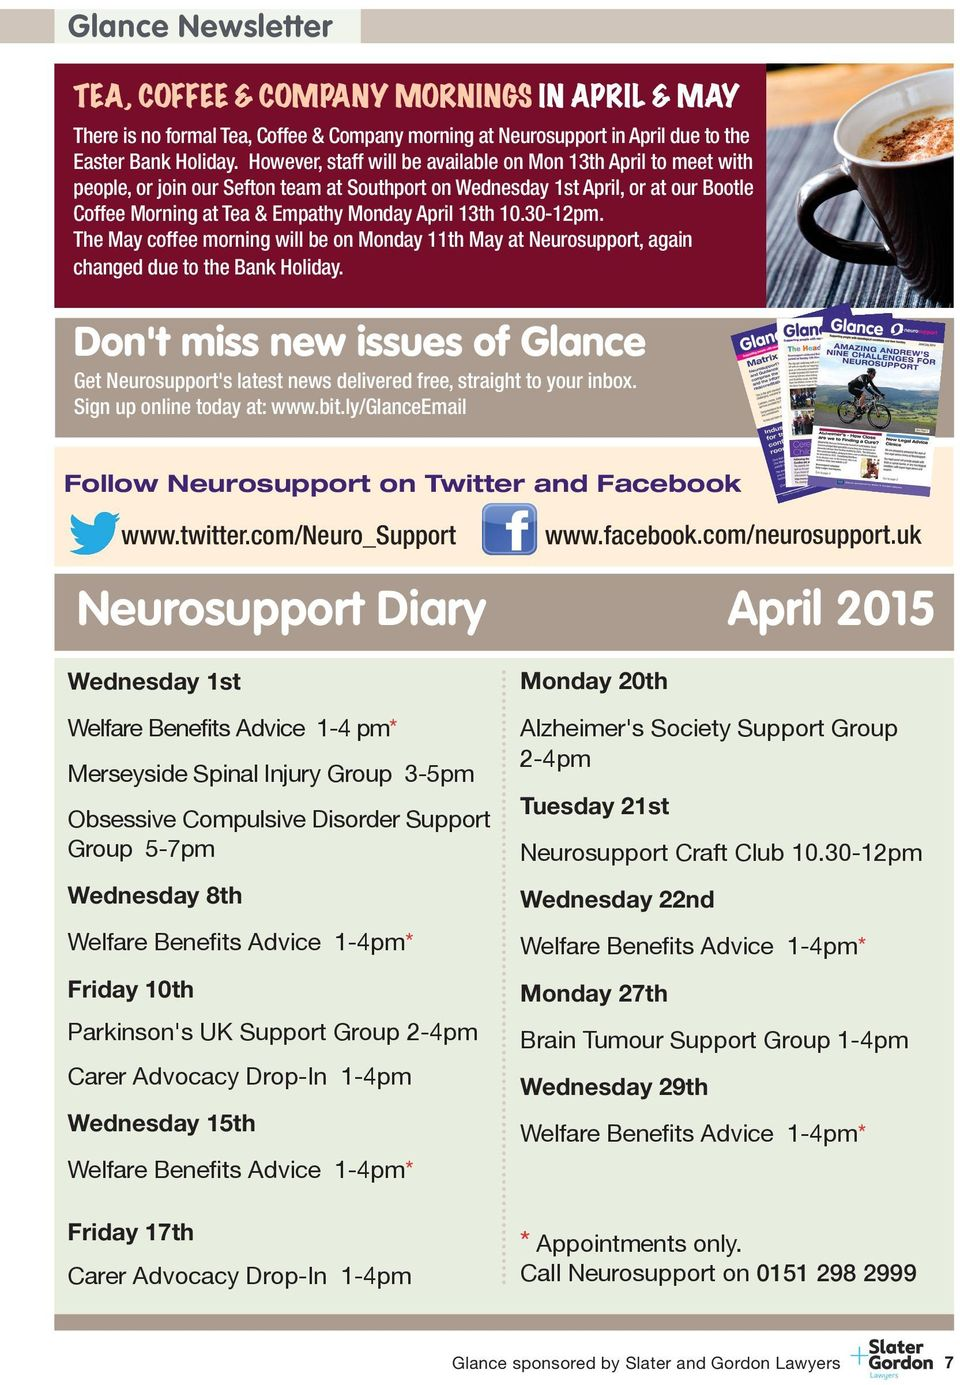 10.30-12pm. The May coffee morning will be on Monday 11th May at Neurosupport, again changed due to the Bank Holiday.